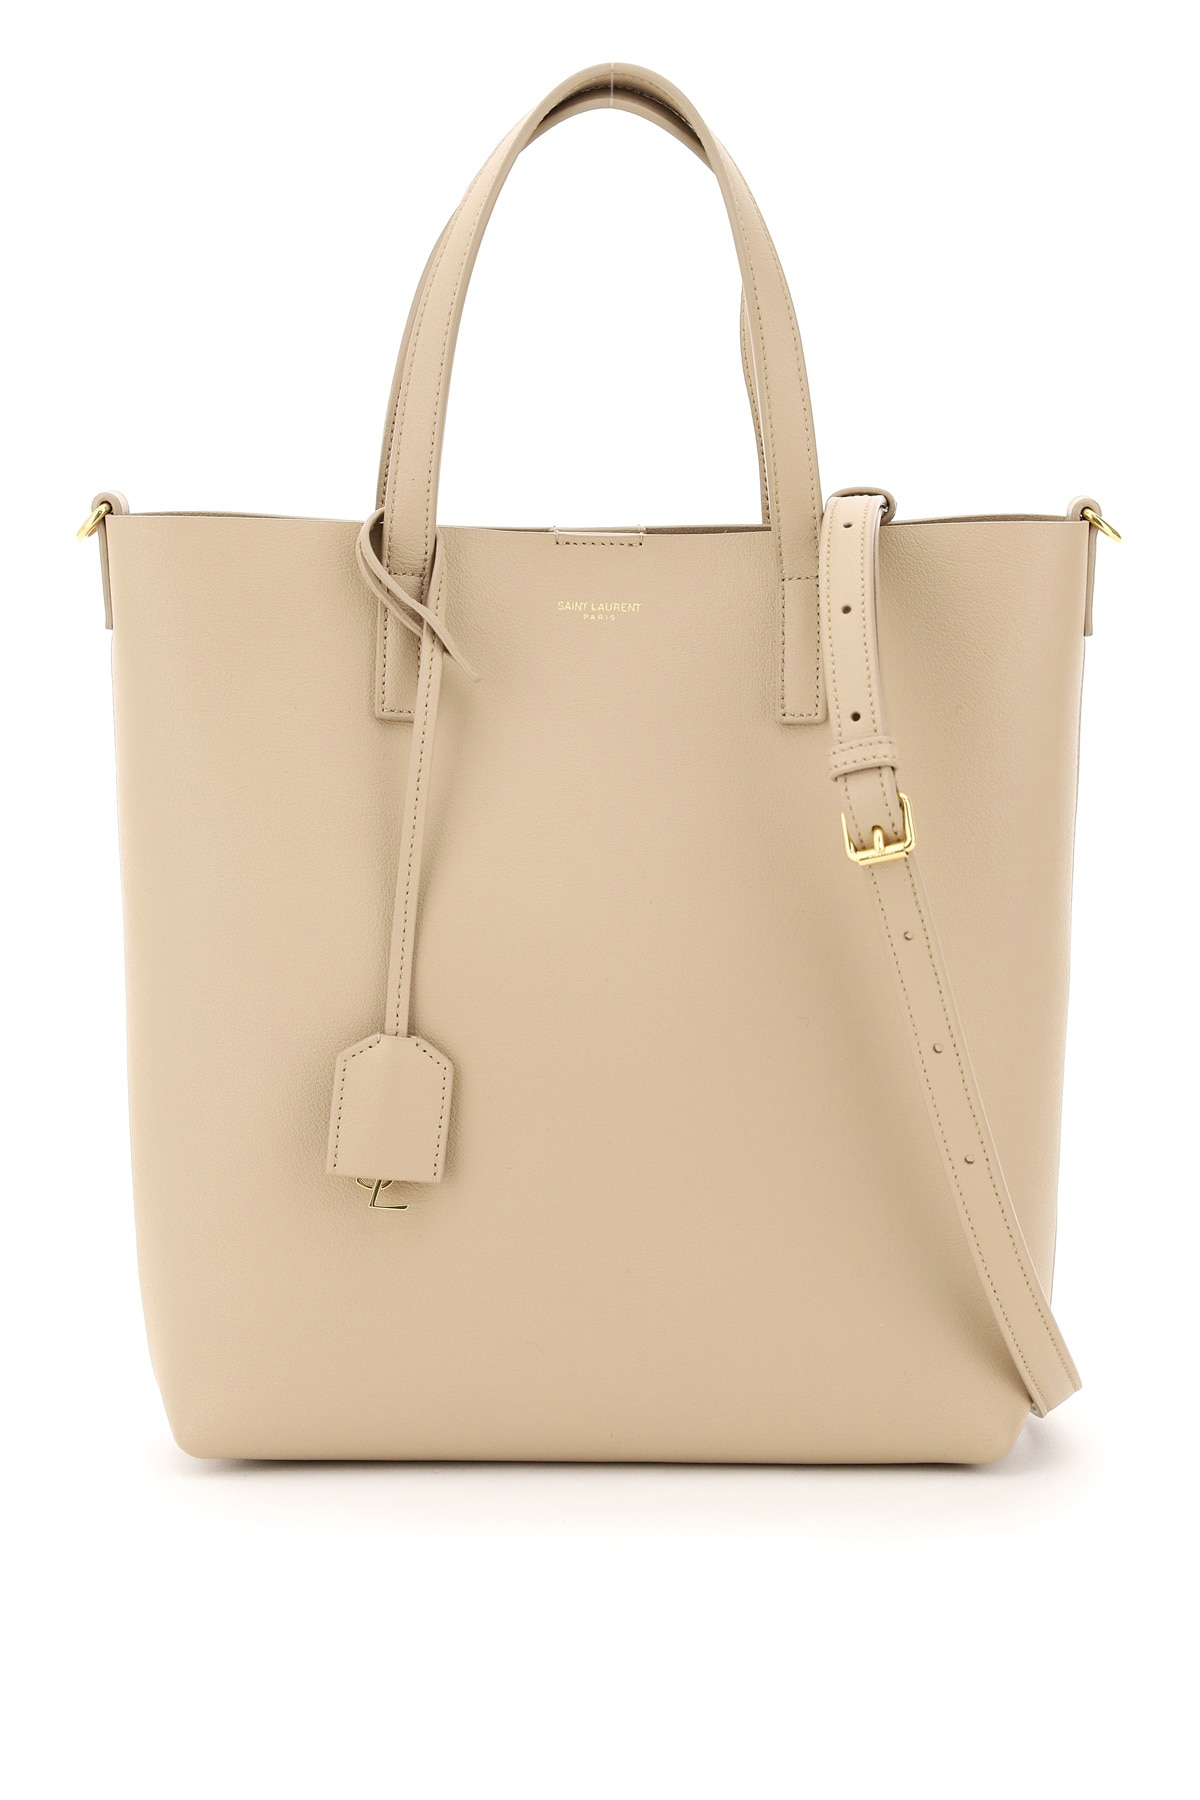 SAINT LAURENT NORTH/SOUTH TOY LEATHER SHOPPING BAG OS Beige Leather